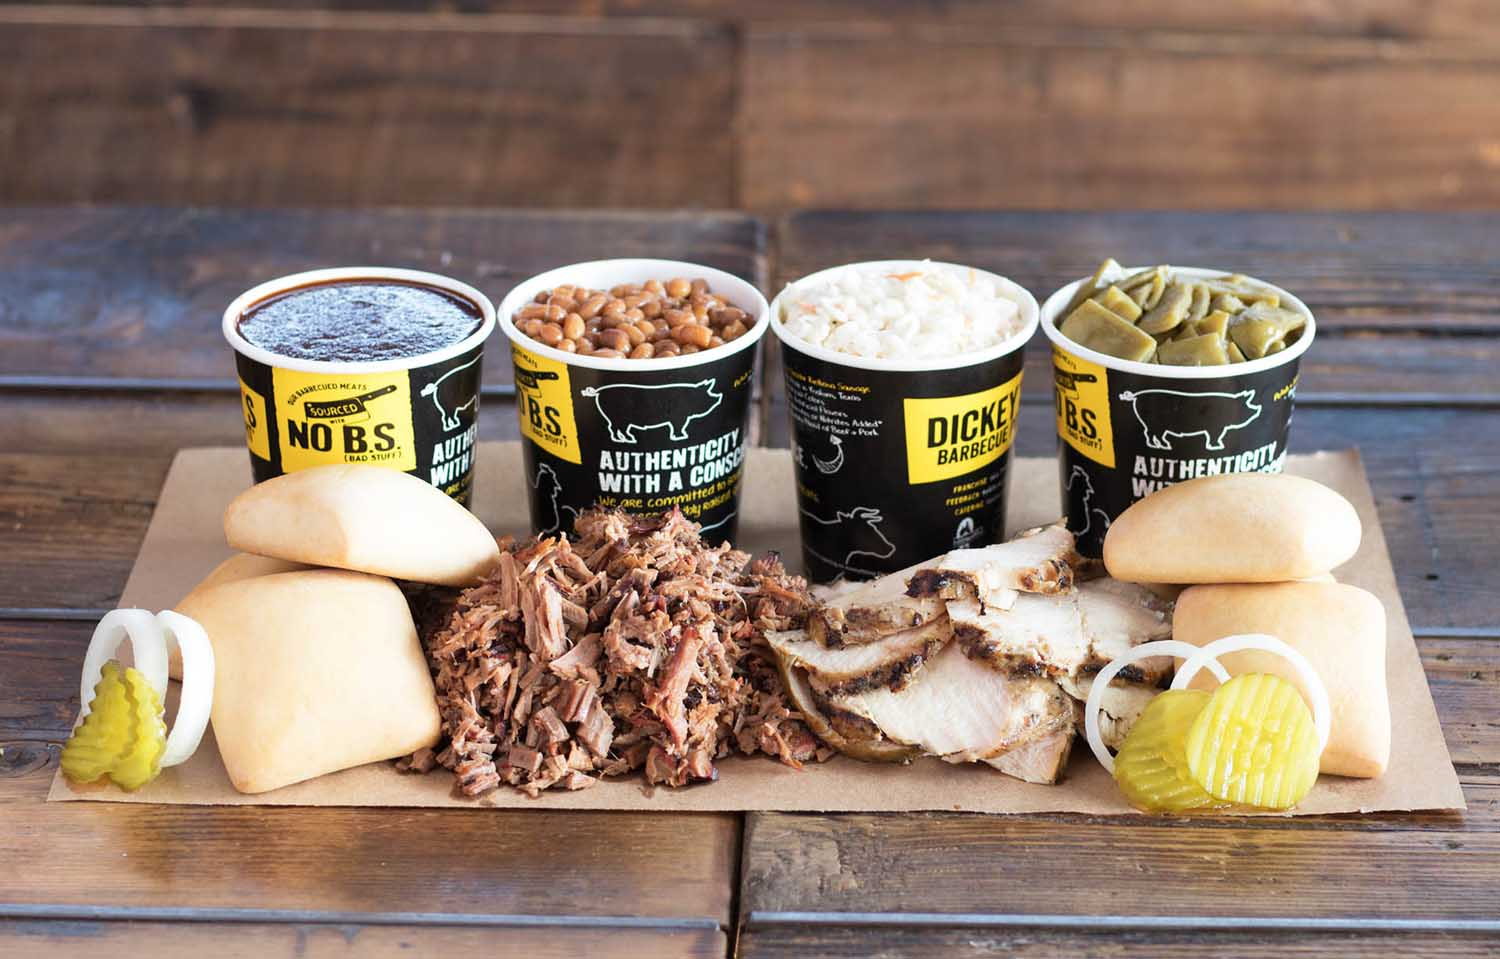 The Daily Meal: Local Entrepreneurs Expand the Dickey's Brand in La Marque, TX